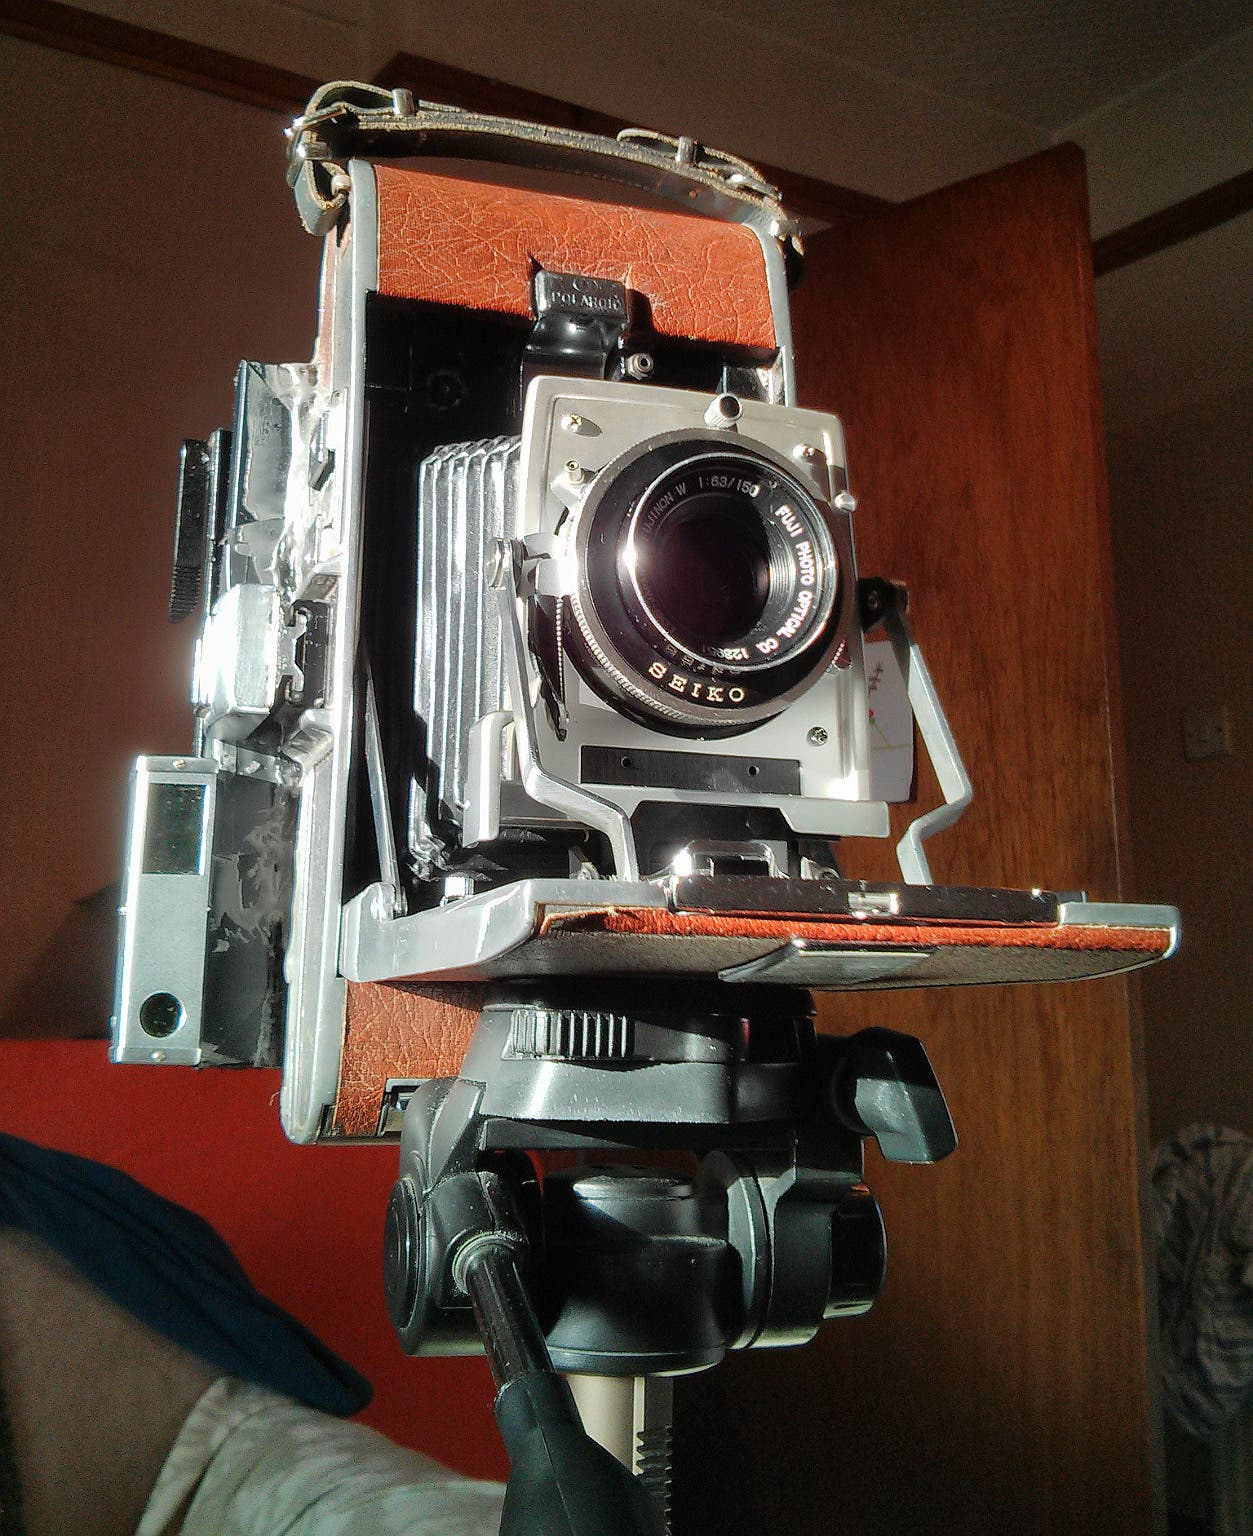 This Polaroid Camera Was Converted to Shoot Large Format